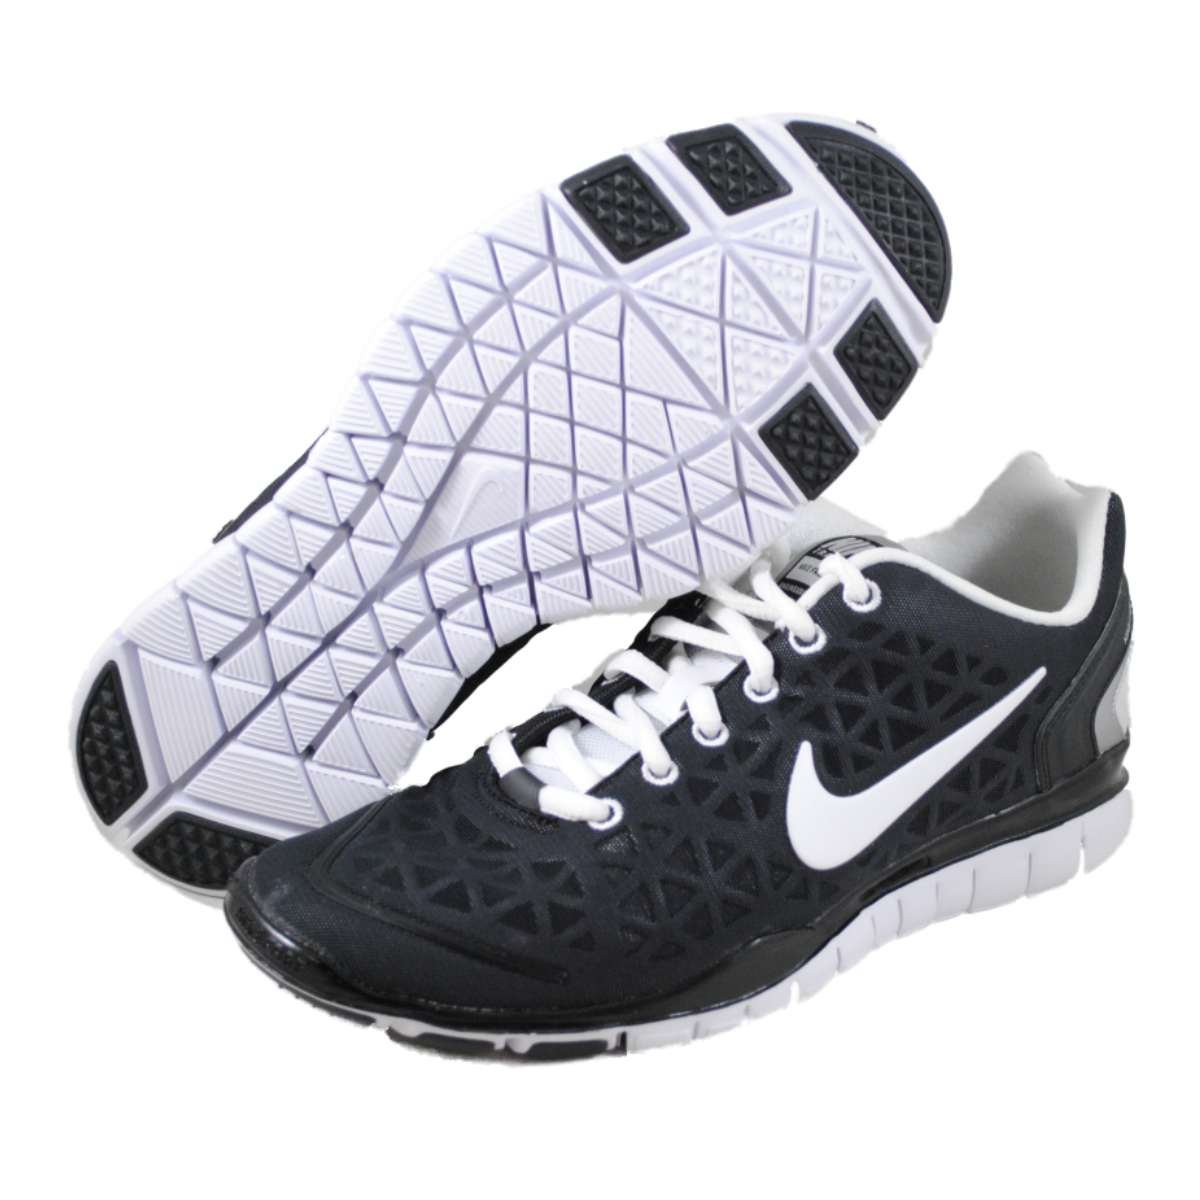 cheap for discount 5da88 d8c41 Womens Nike Free TR Fit 2 Running Shoes Black / White / Metallic Silver  487789-008 Size 7